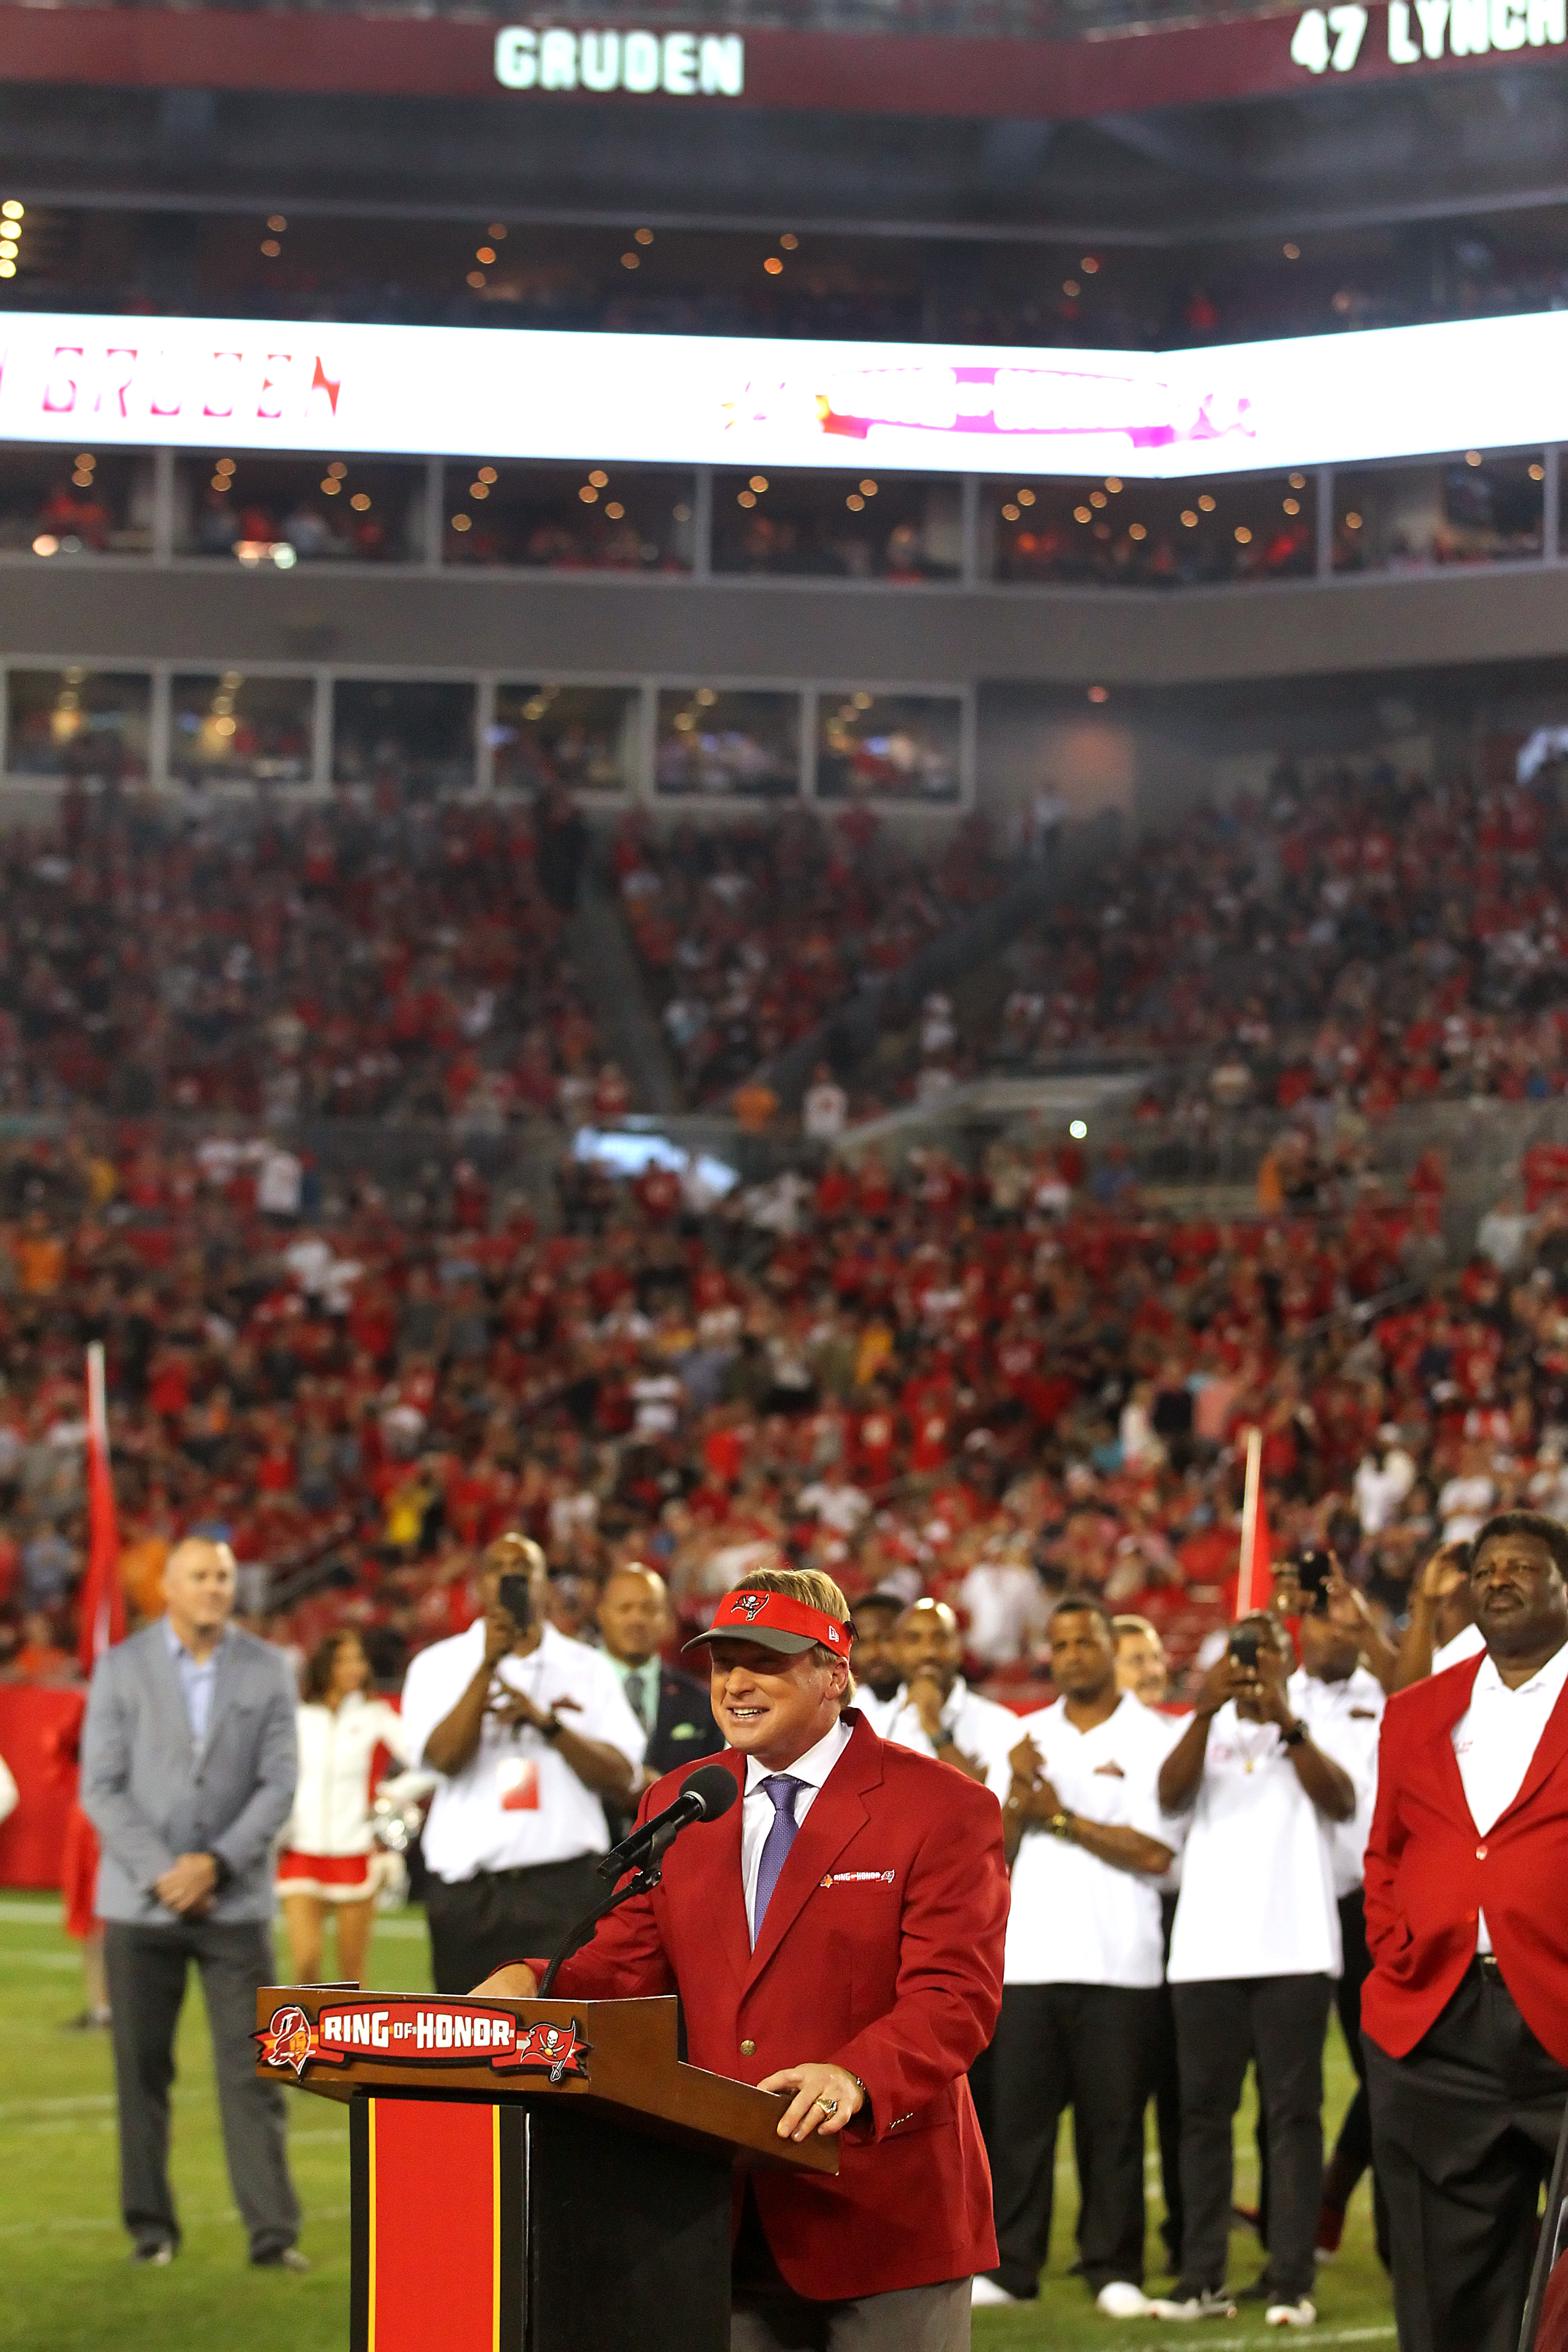 TAMPA FL – DEC 18 MNF announcer and former Tampa Bay Buccaneers Super Bowl winning head coach Jon Gruden speaks to the fans as he is Inducted into the